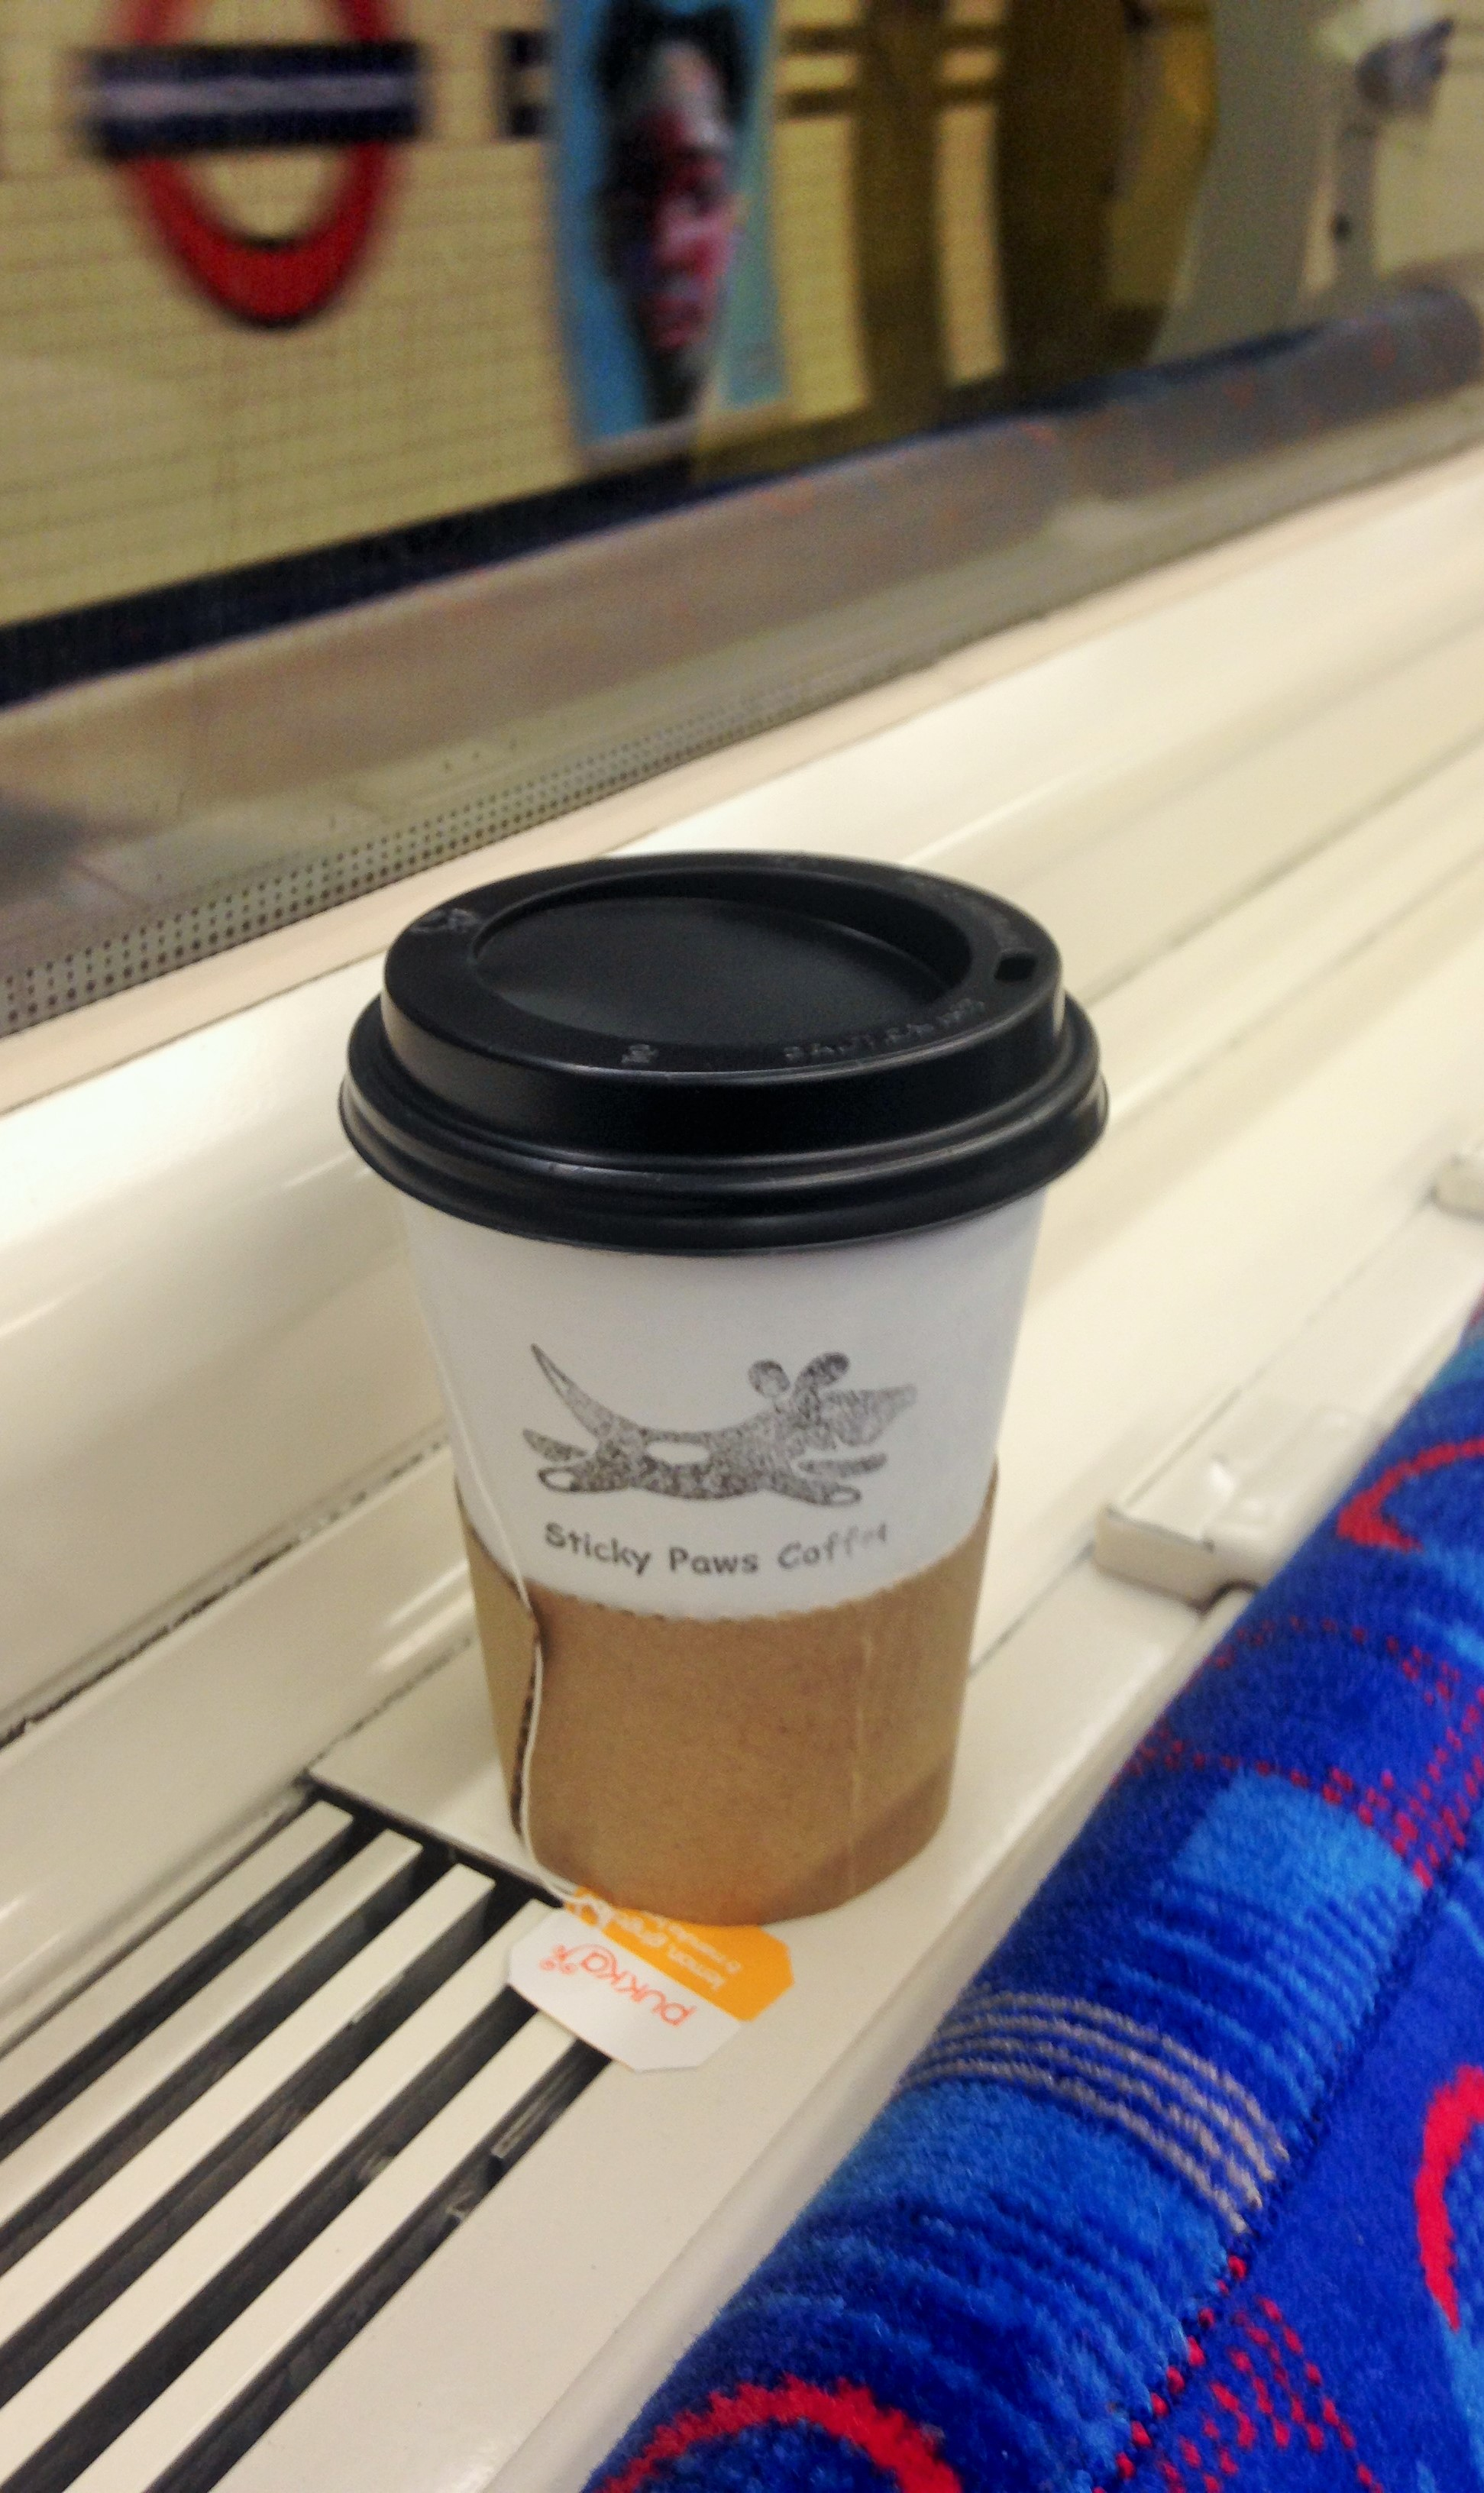 Sticky Paws Coffee cup on the Northern Line - kenningtonrunoff.com